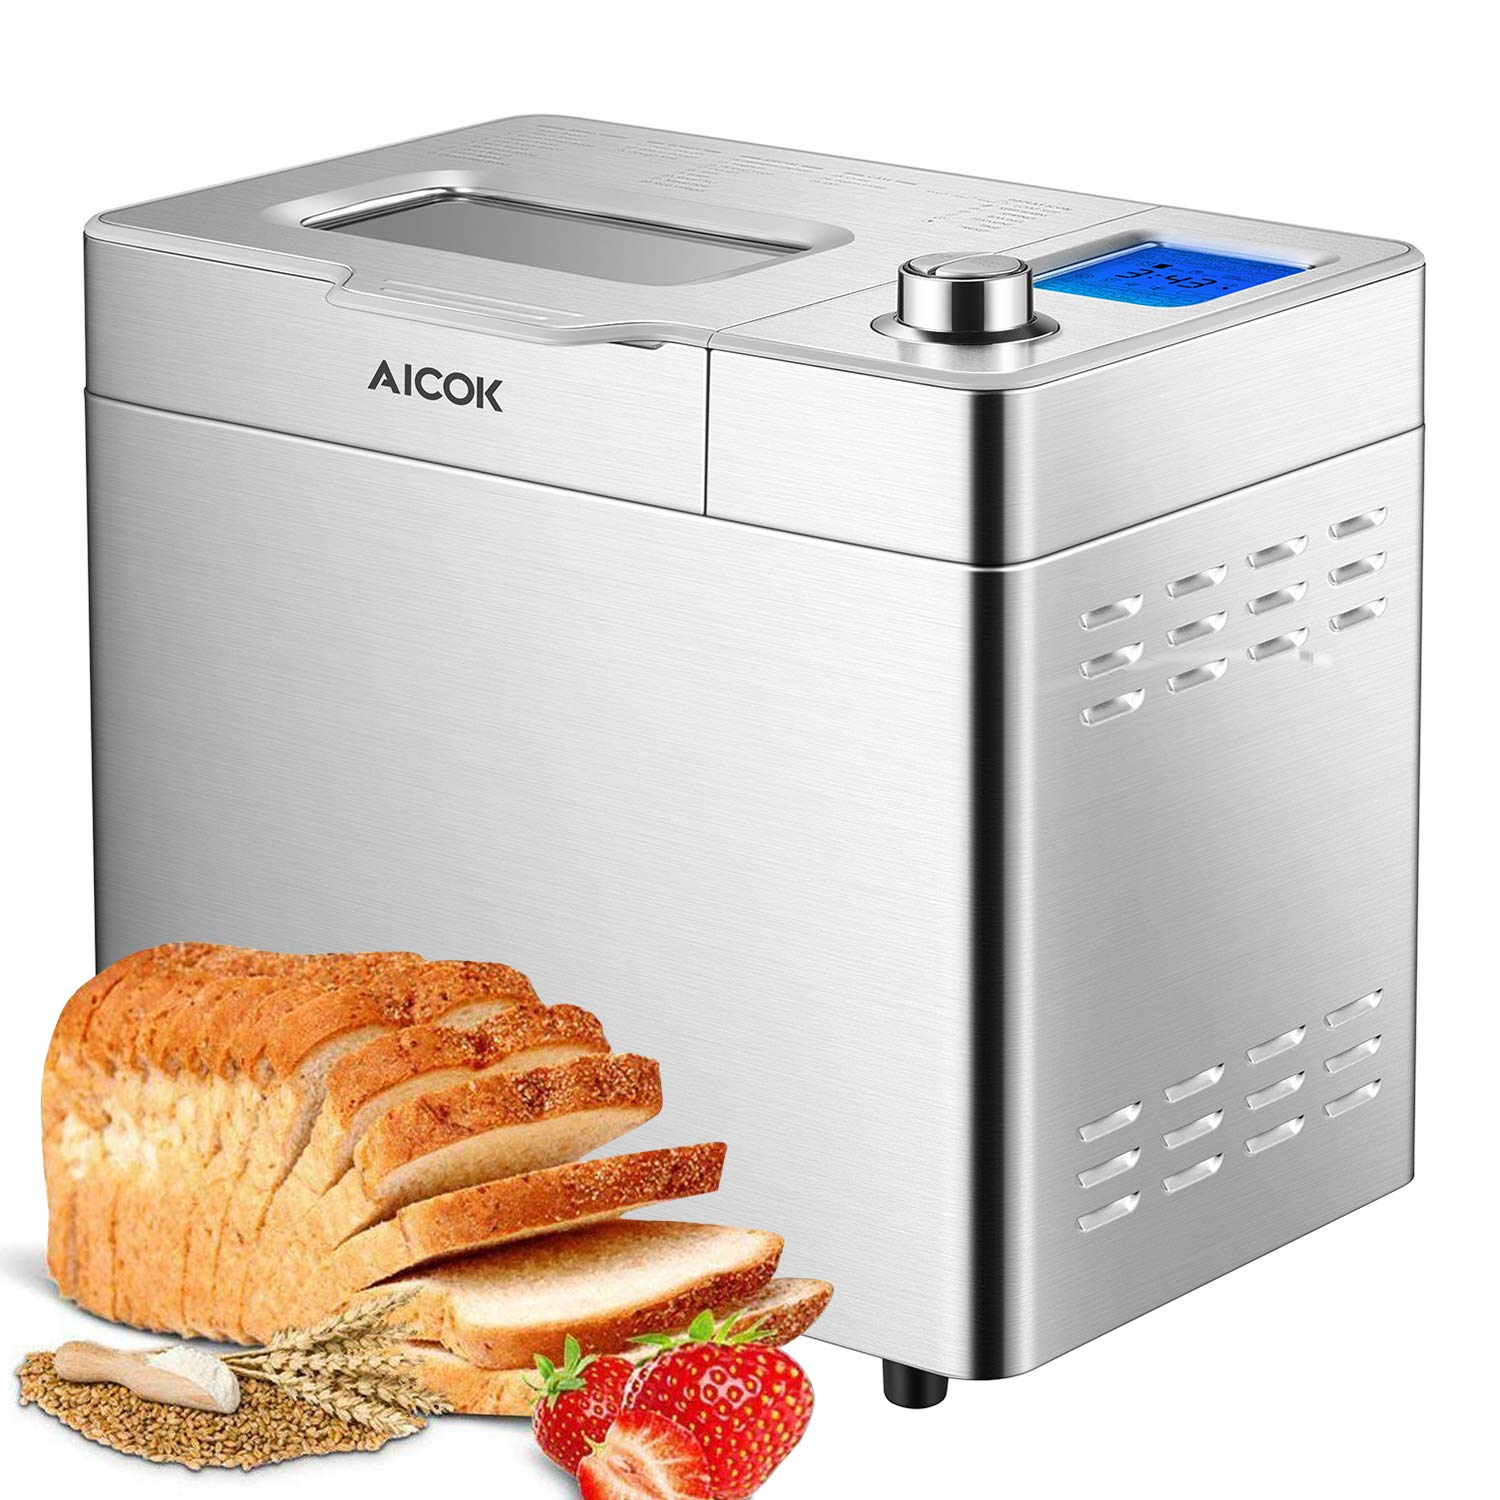 Breadmaker, Aicok 2 Pound Bread Maker Machine with Gluten Free Menu setting, 25 Programs, Large LED Display, One-Knob-Operation, Fruit&Nut Dispenser, FDA Certified, Fully Stainless Steel